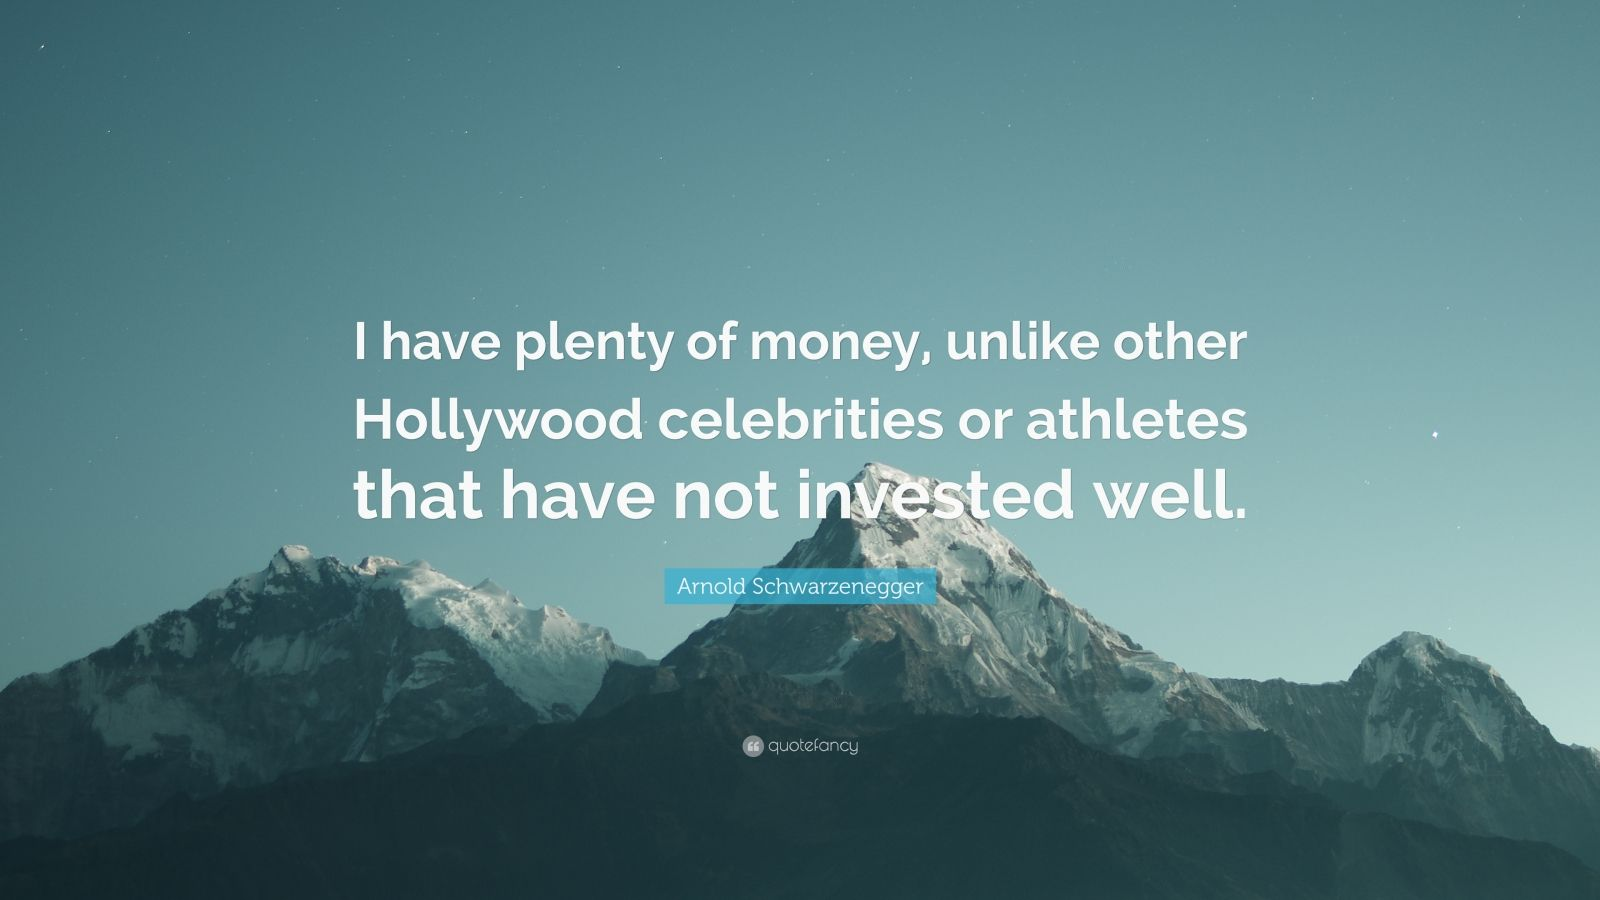 """Arnold Schwarzenegger Quote: """"I have plenty of money, unlike other Hollywood celebrities or athletes that have not invested well."""""""